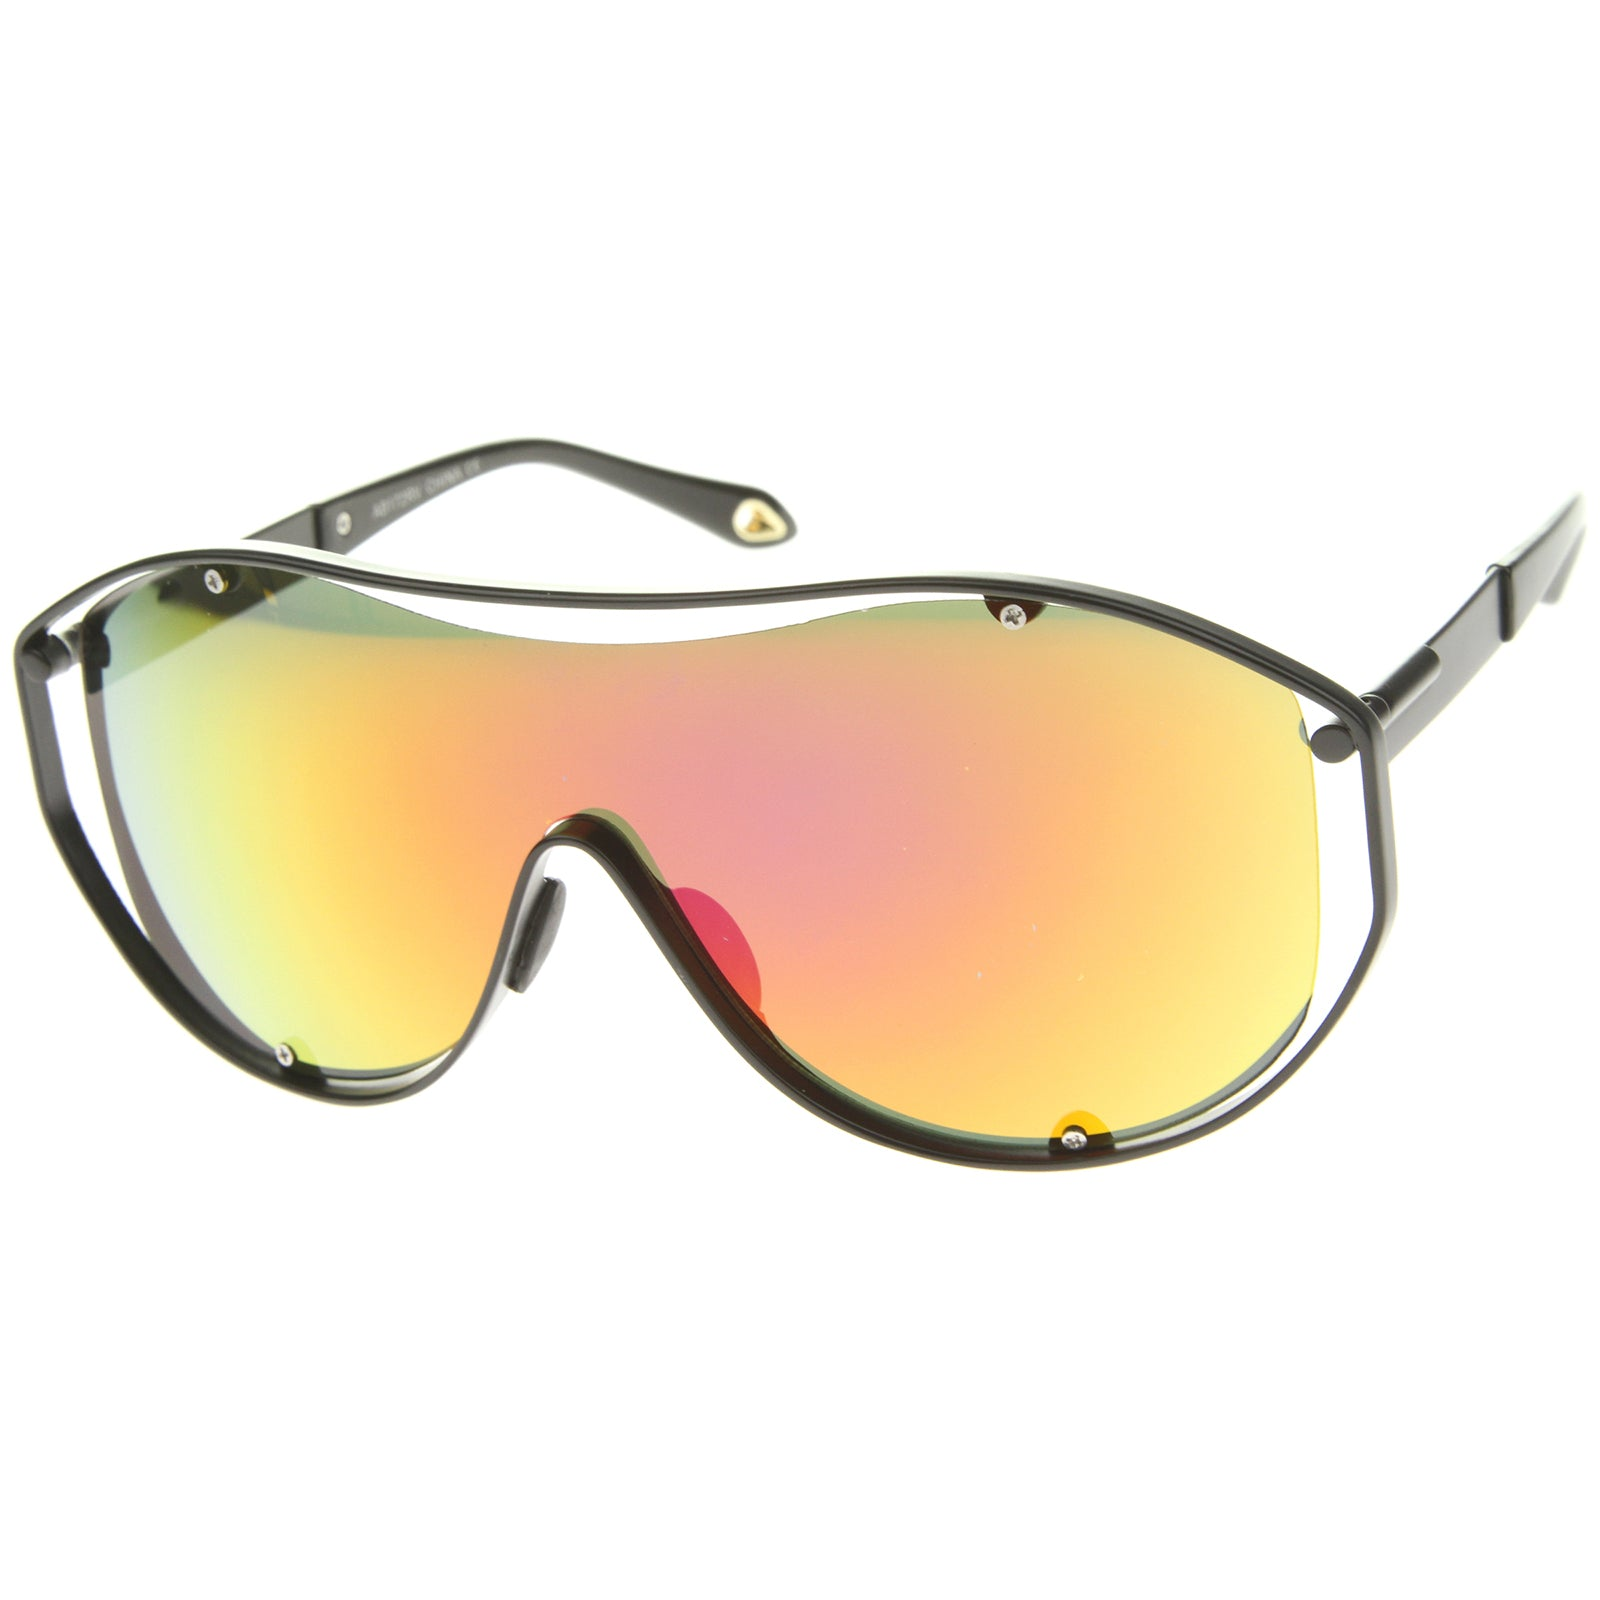 Modern Fashion Metal Frame Inner Rimless Mirror Lens Shield Sunglasses - sunglass.la - 6